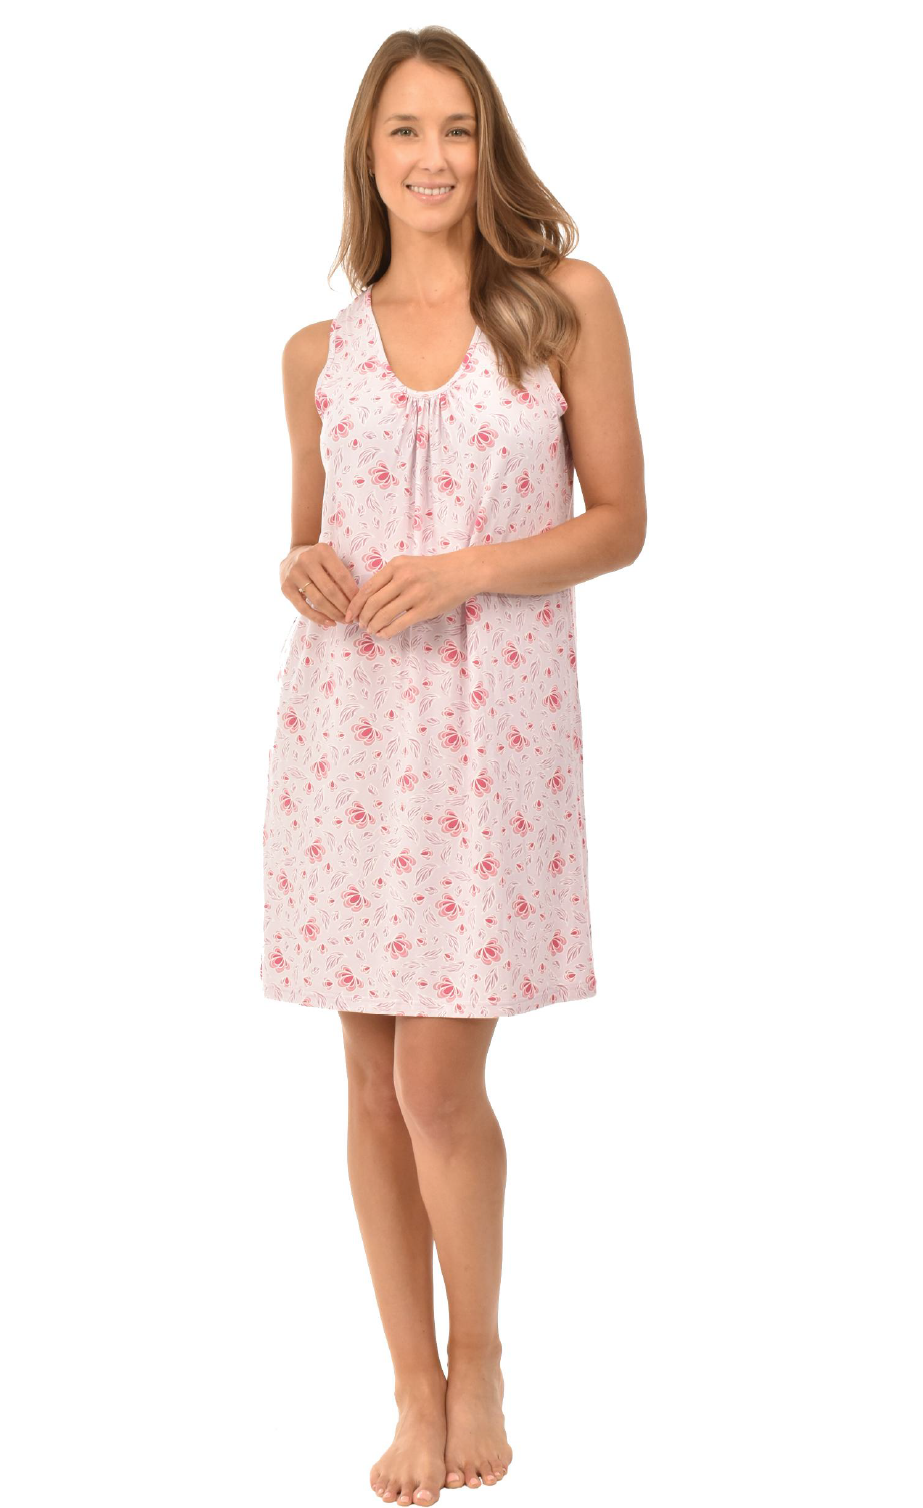 Sleeveless Nightgown - Pink